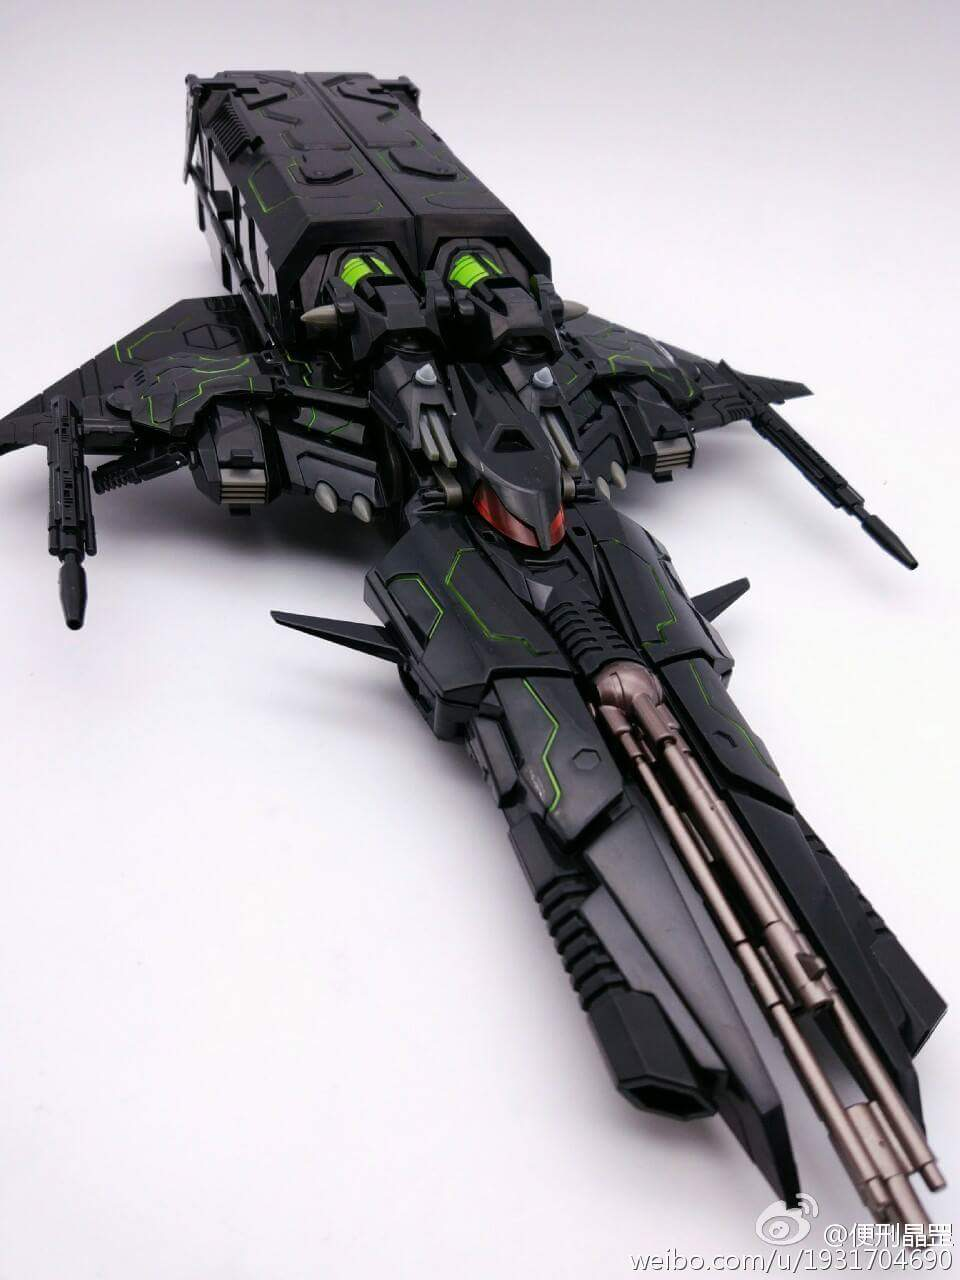 [Mastermind Creations] Produit Tiers - R-15 Jaegertron - aka Lockdown des BD IDW - Page 2 Nw7ndVM0